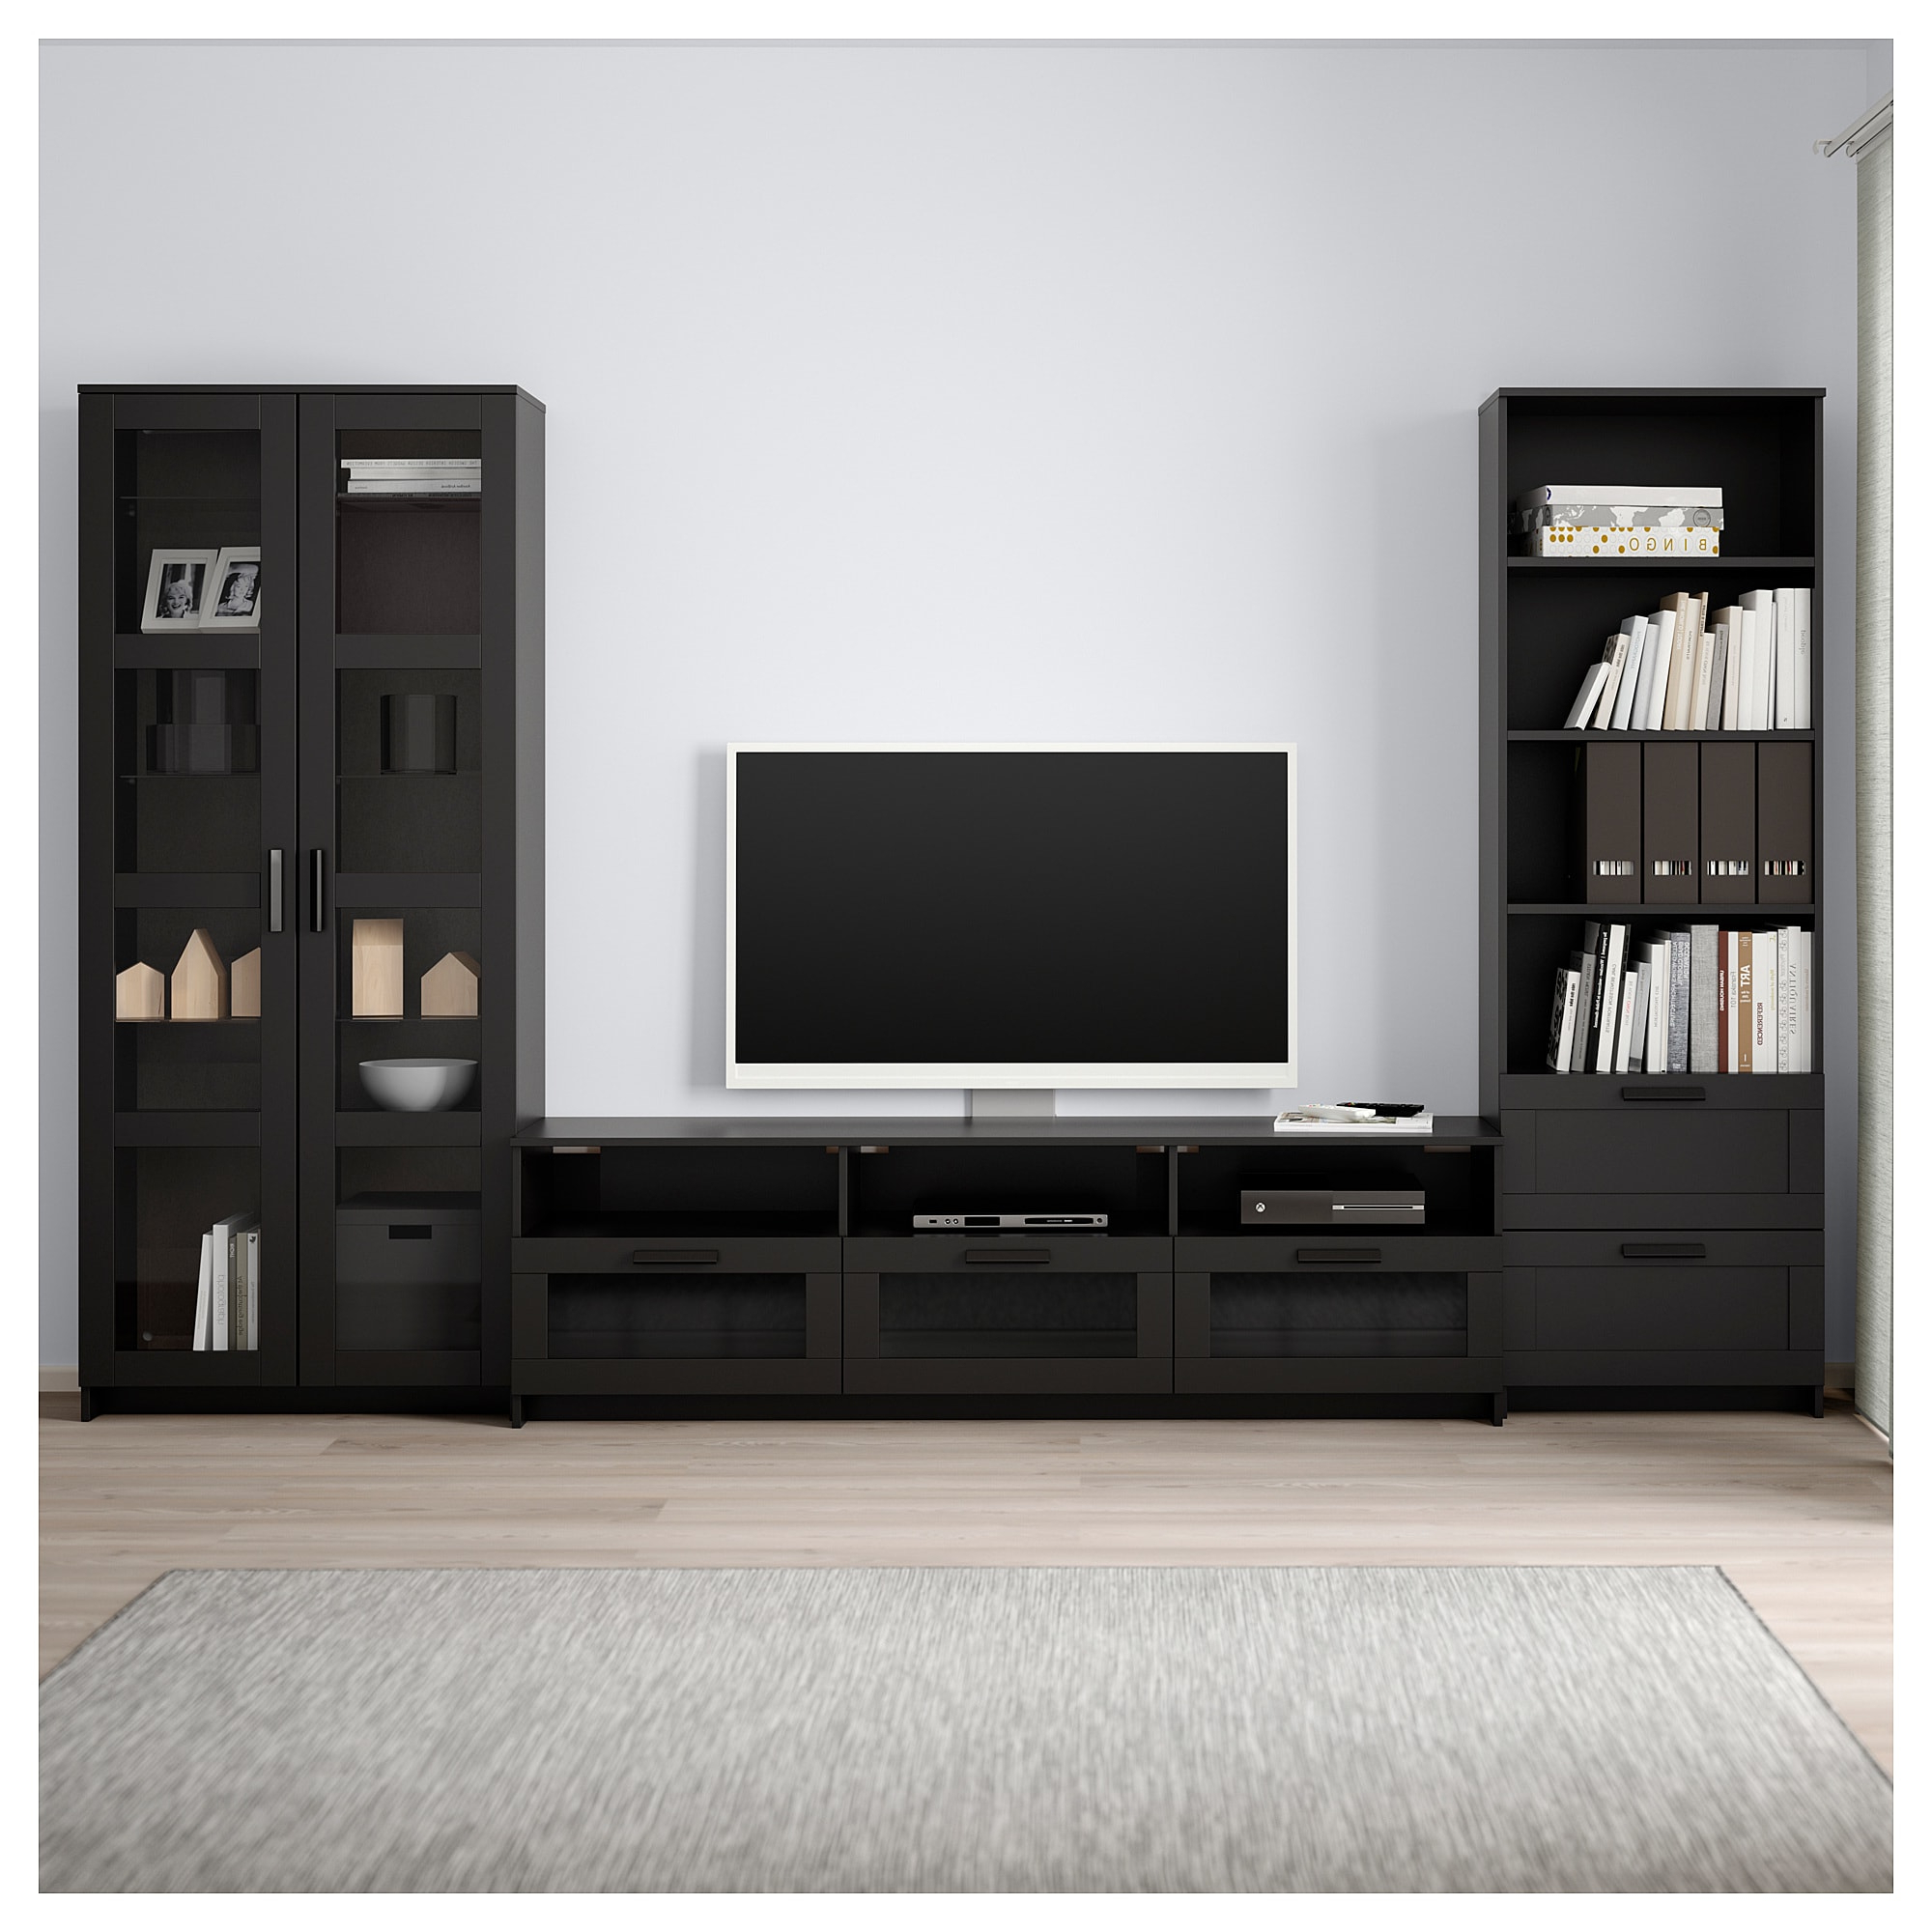 Ikea Throughout Popular Tv Cabinets With Glass Doors (Gallery 14 of 20)